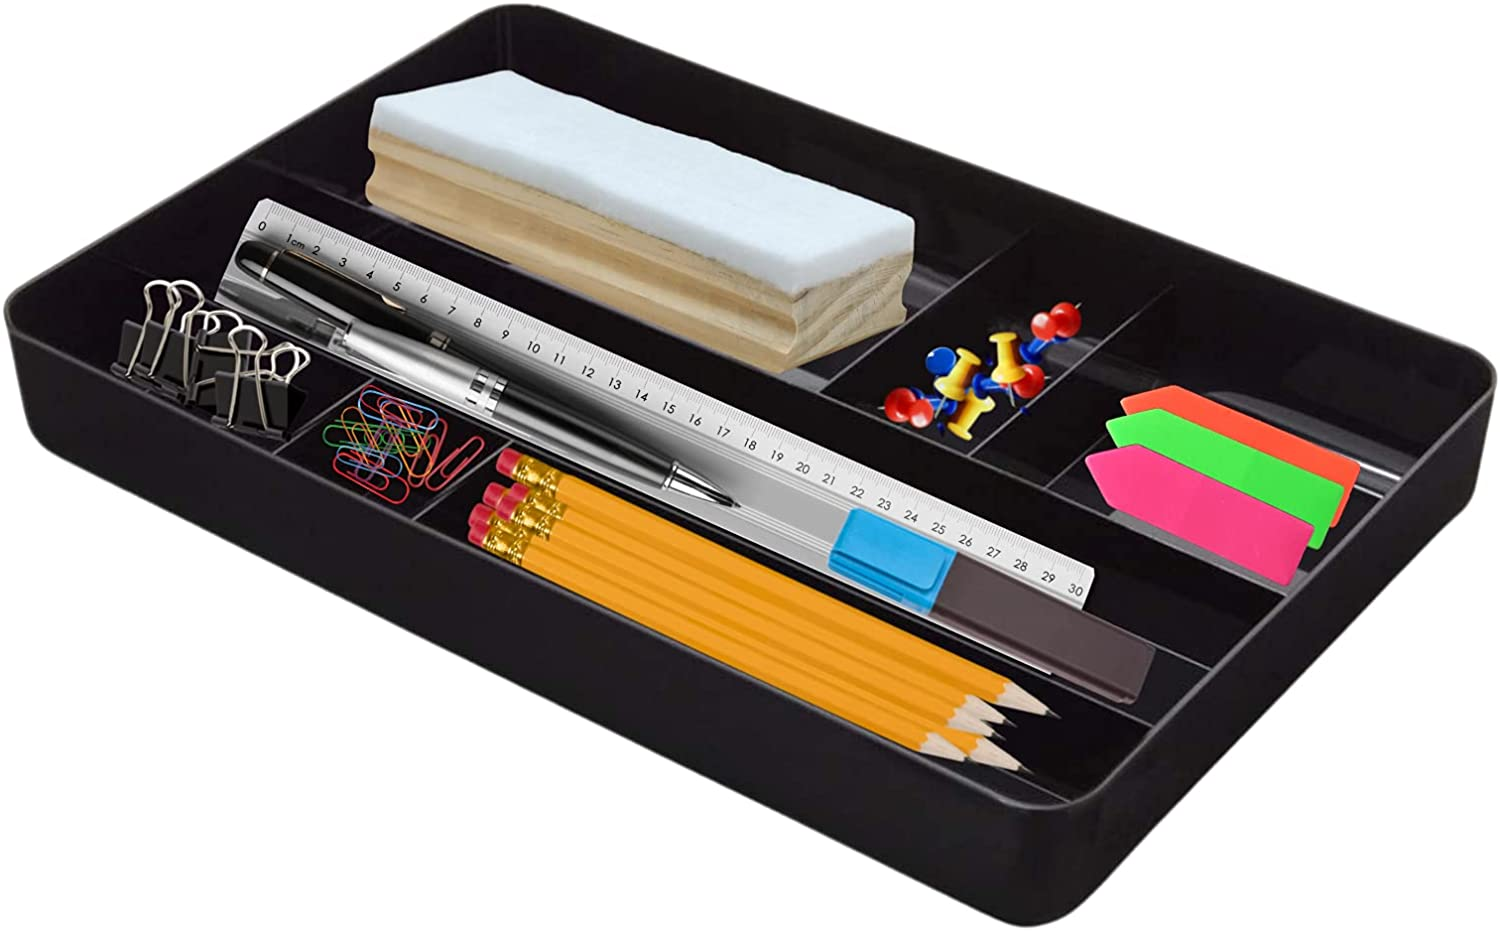 55% OFF 1InTheOffice Desk Drawer Organizer Tray Compartment 7 Plastic Al sold out.